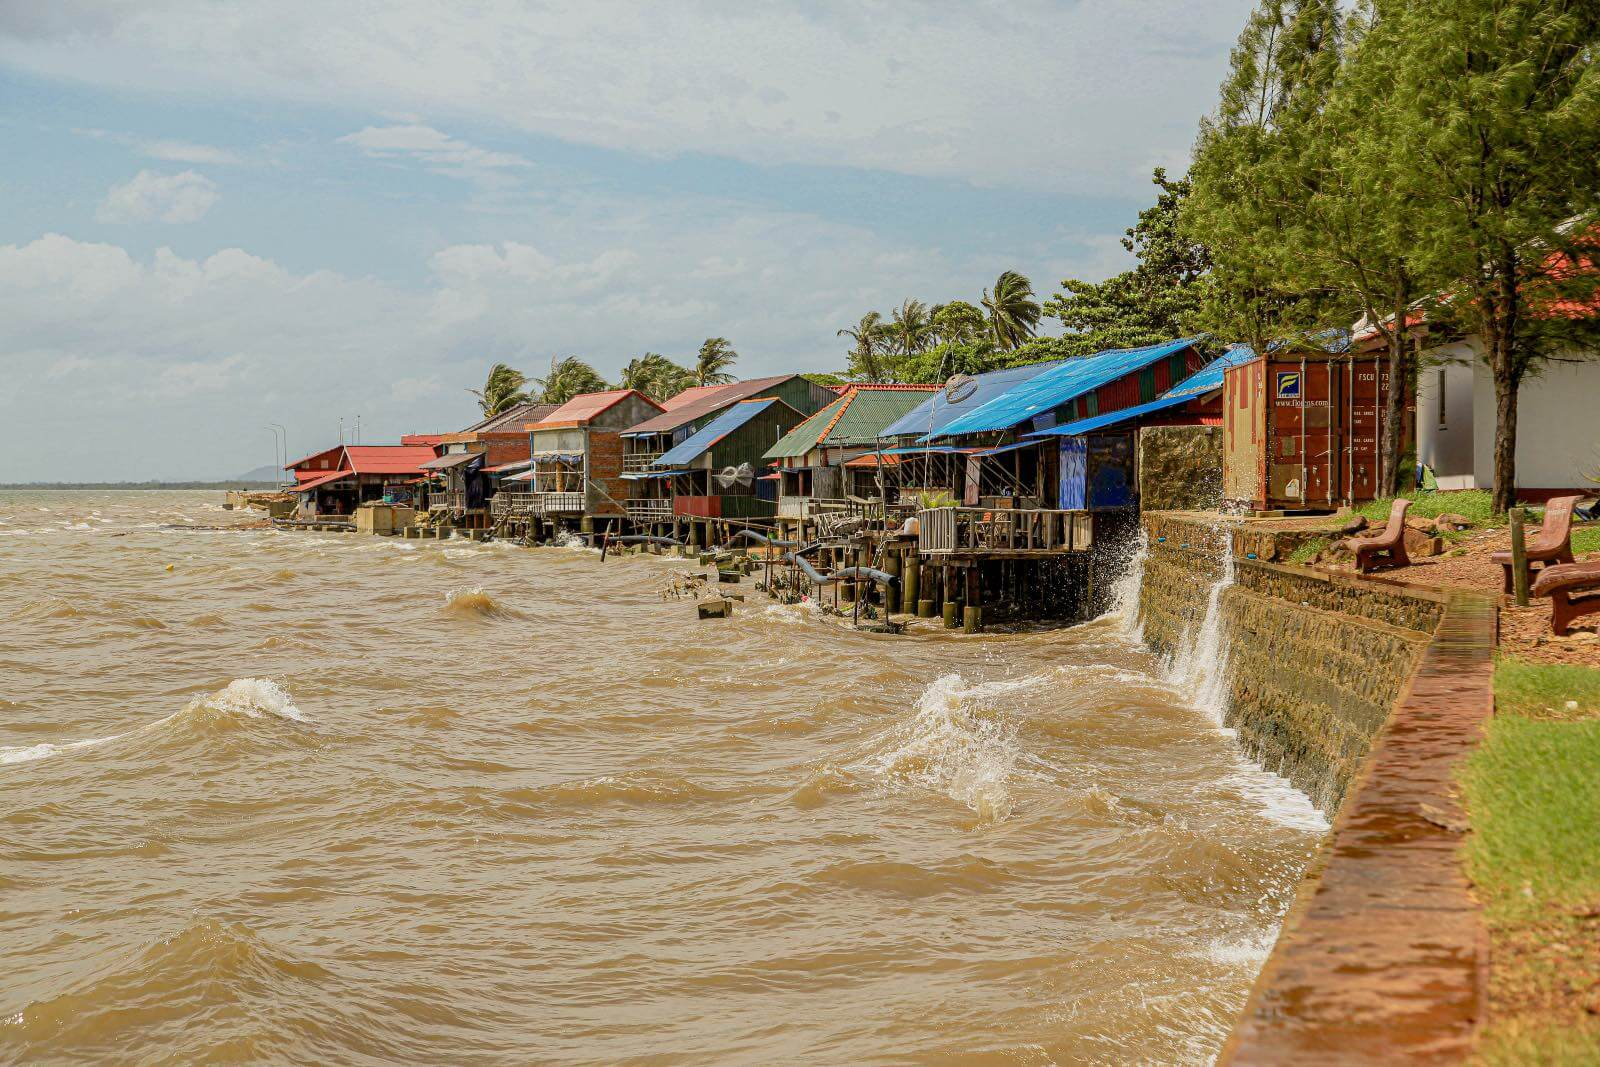 View of the town of Kep, Cambodia on the river